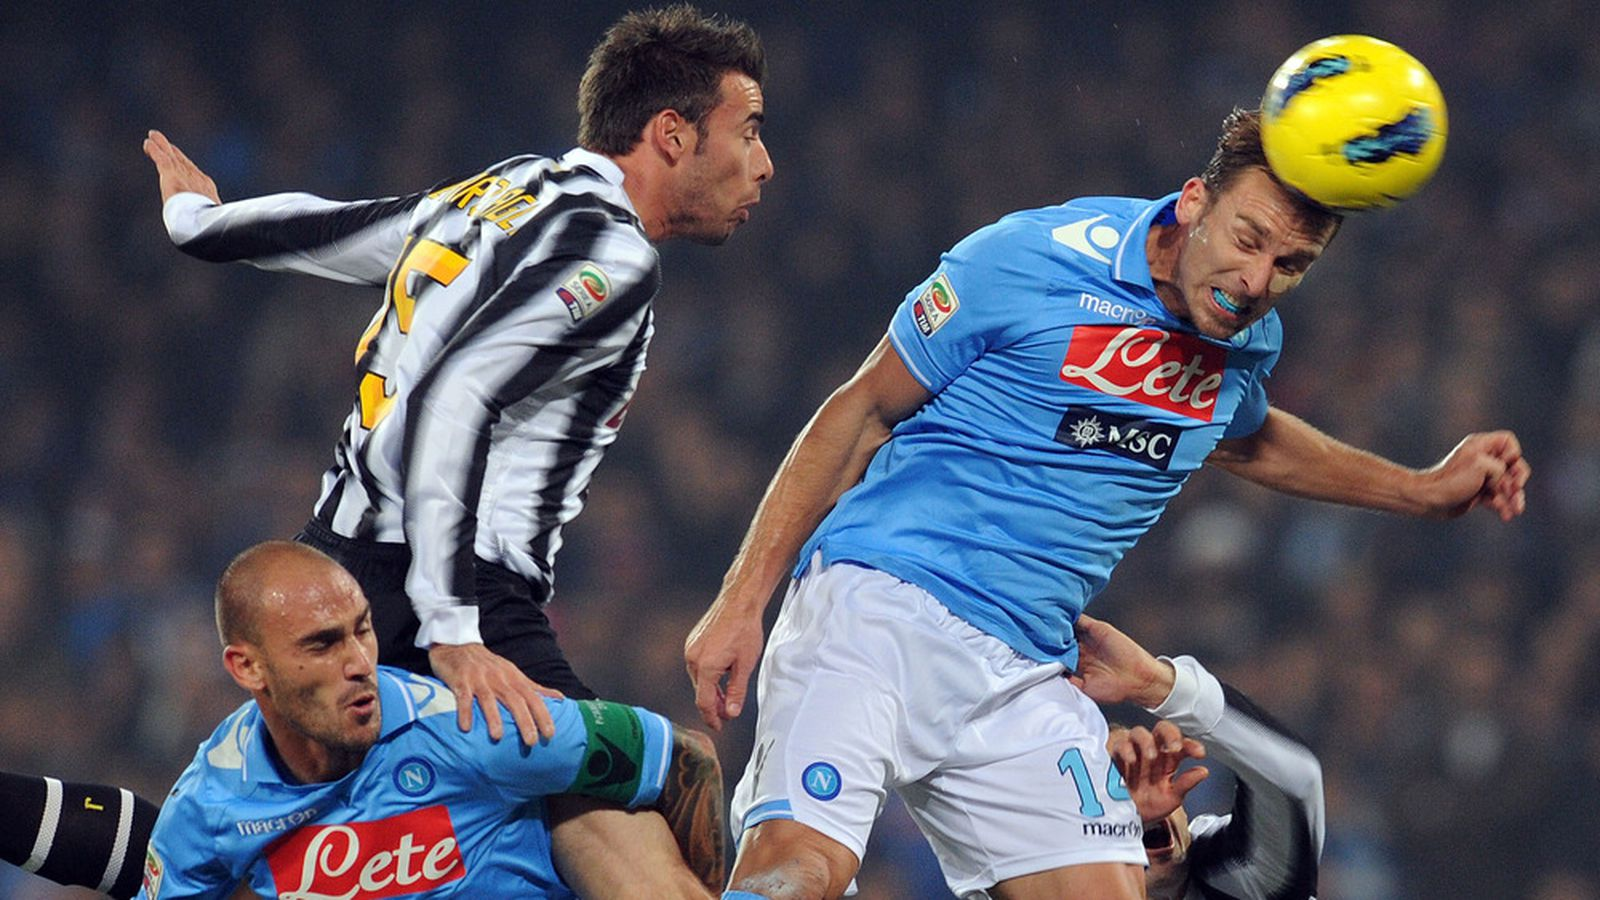 Juventus Vs Napoli 2012 Coppa Italia Final An